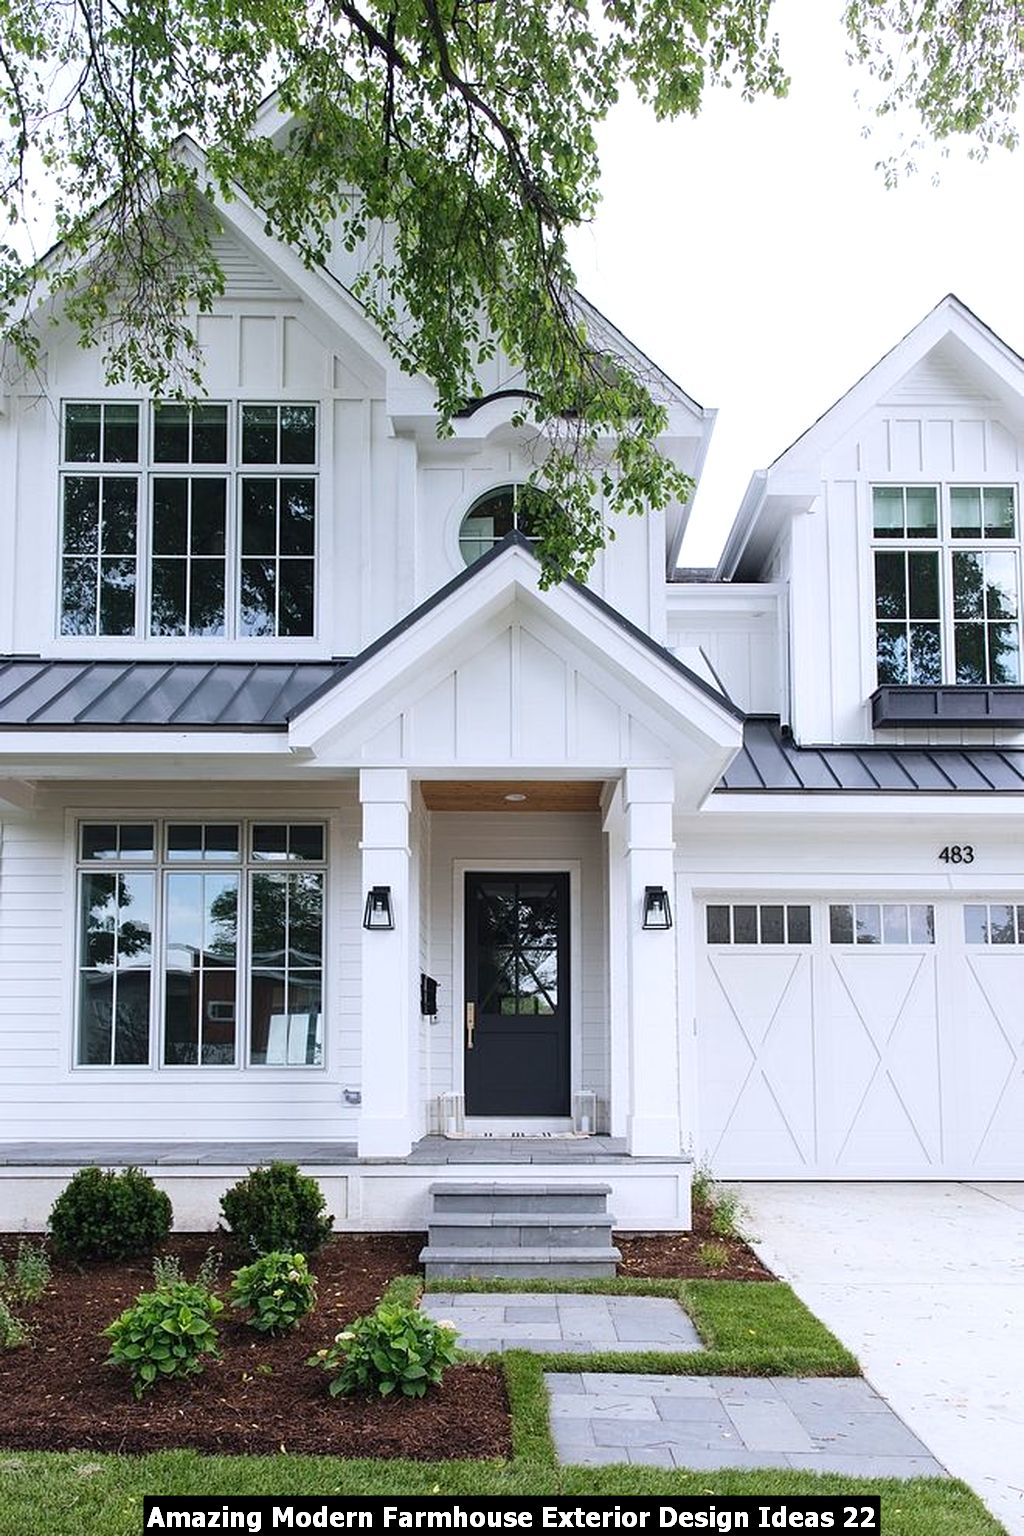 Amazing Modern Farmhouse Exterior Design Ideas 22